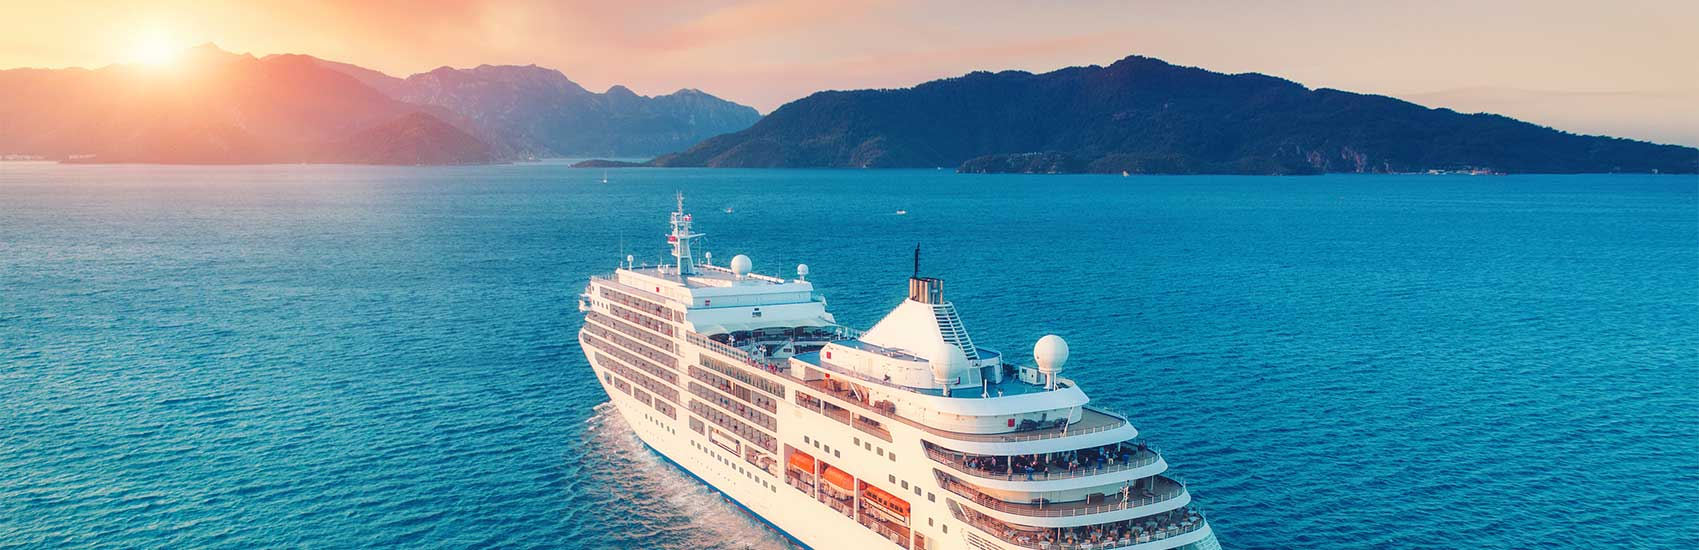 Virtuoso Exclusive Cruise Benefits 0